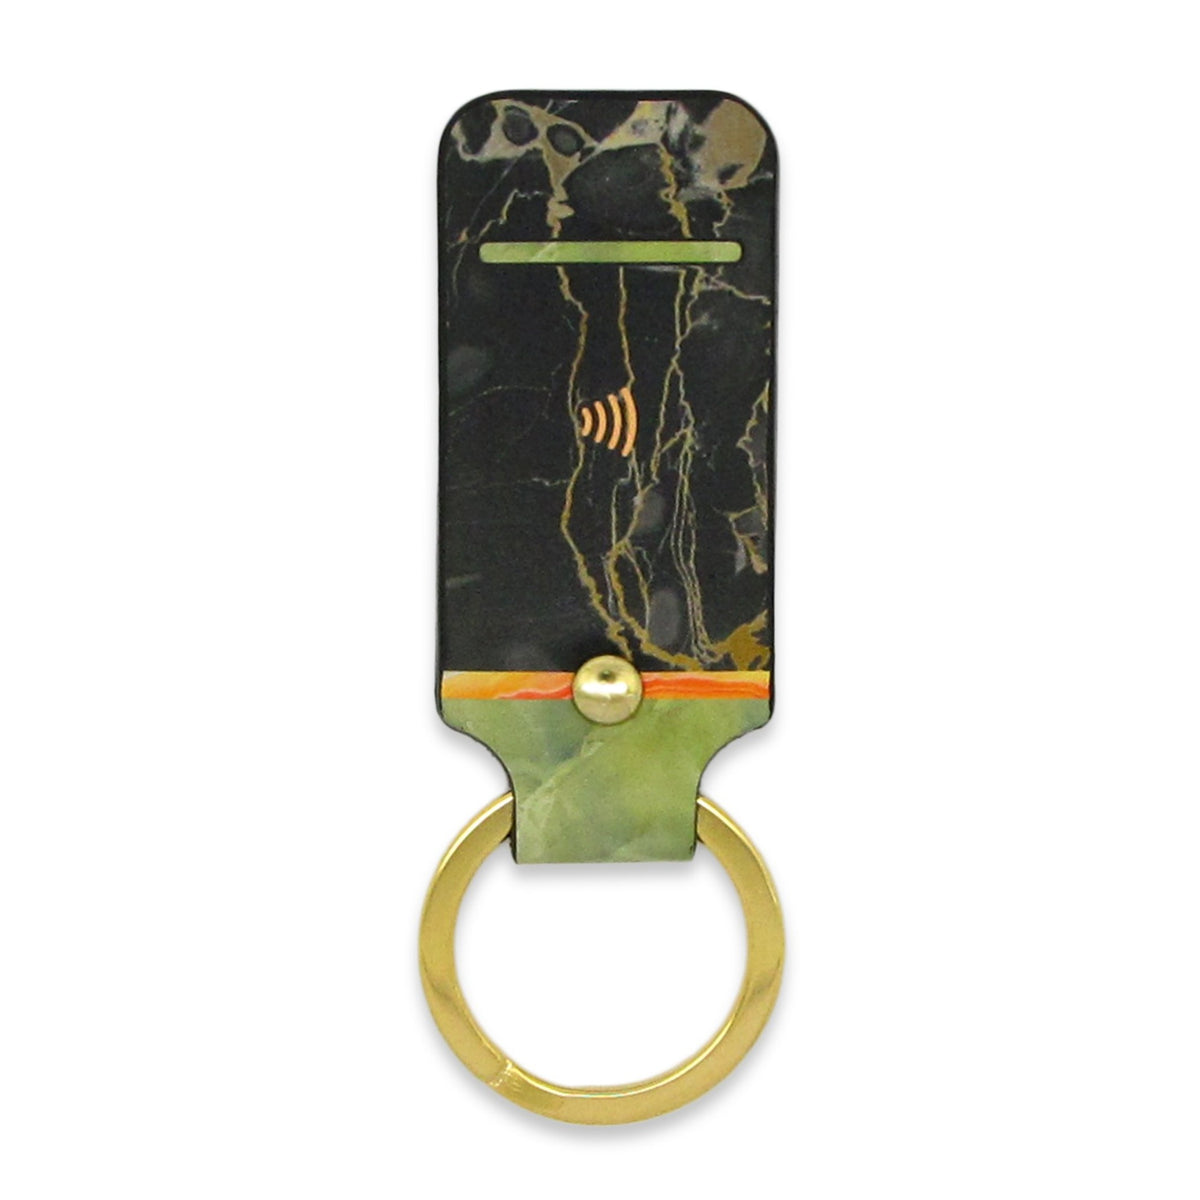 Leather Contactless Payment Key Fob - Black Jade Tovi Sorga With Contactless Payment Chip Jade